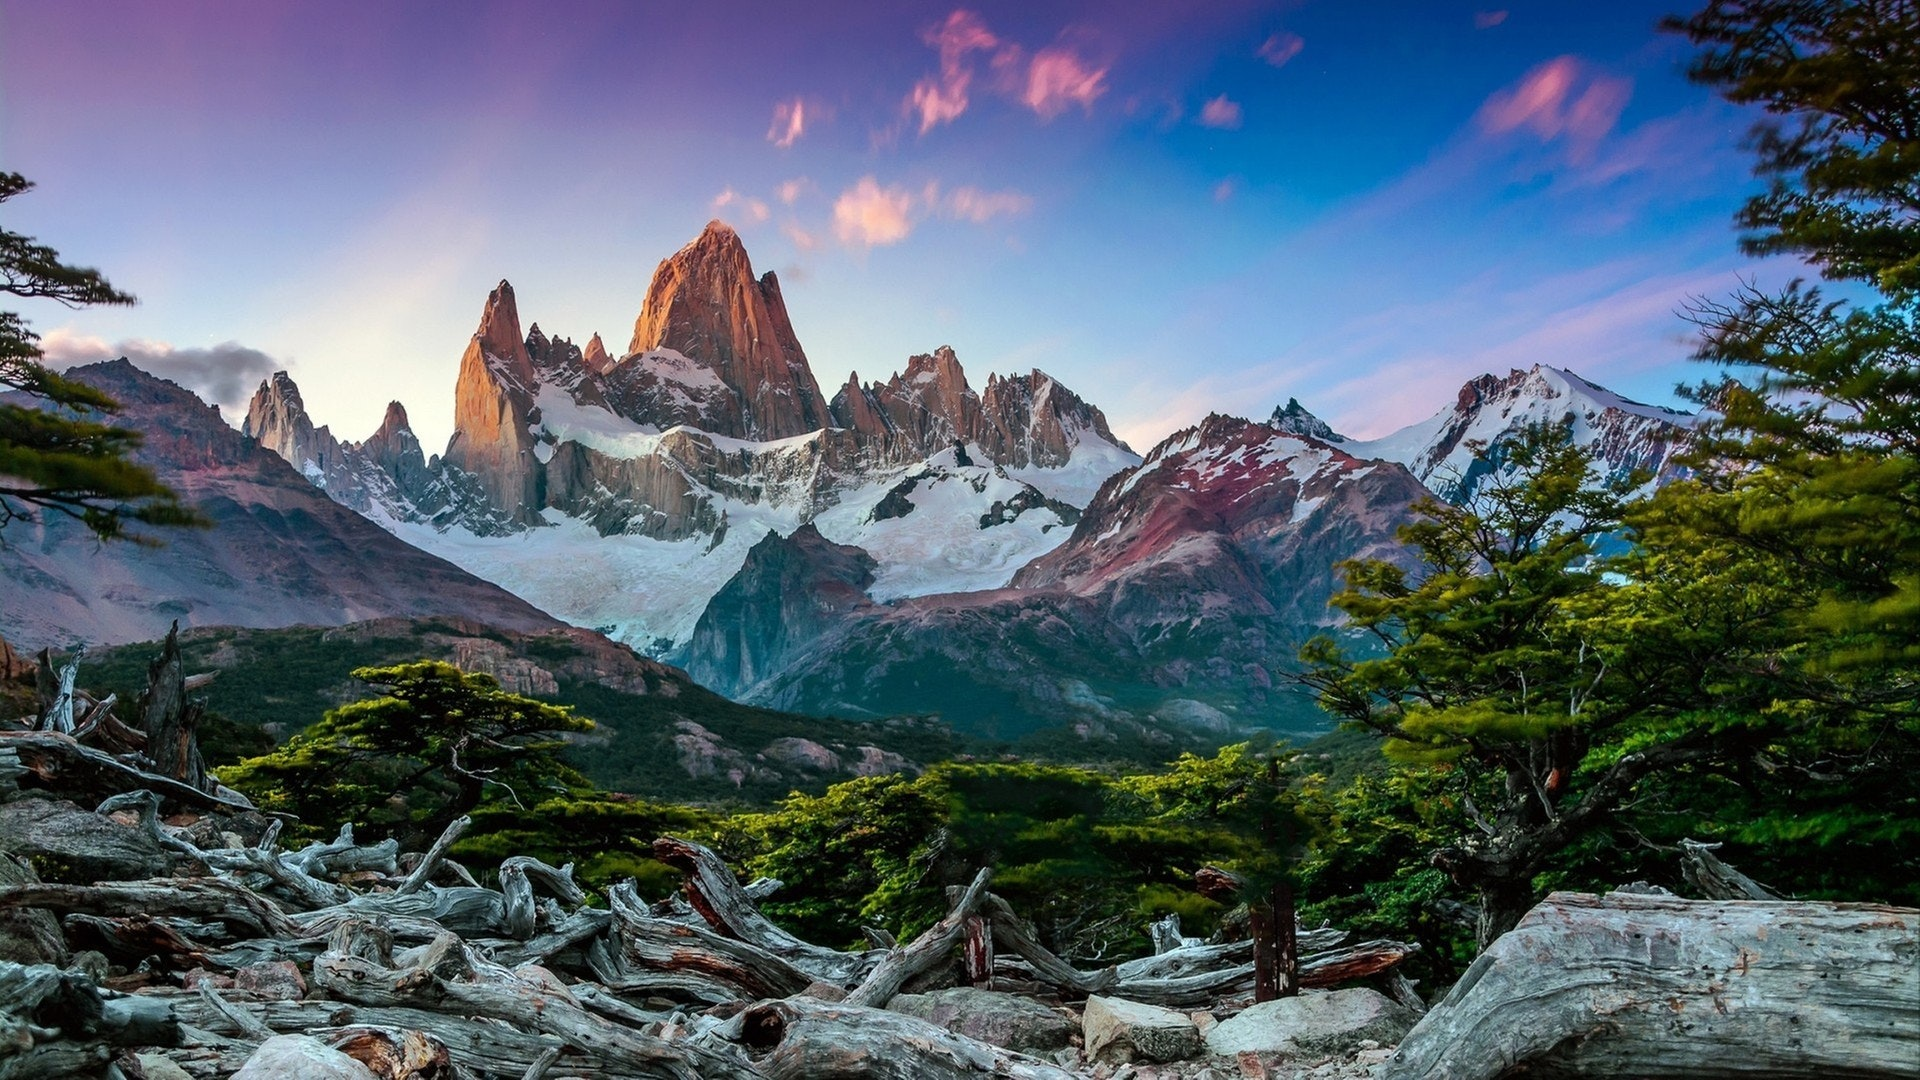 Fitz Roy mountain near El Chalten, in the Southern Patagonia